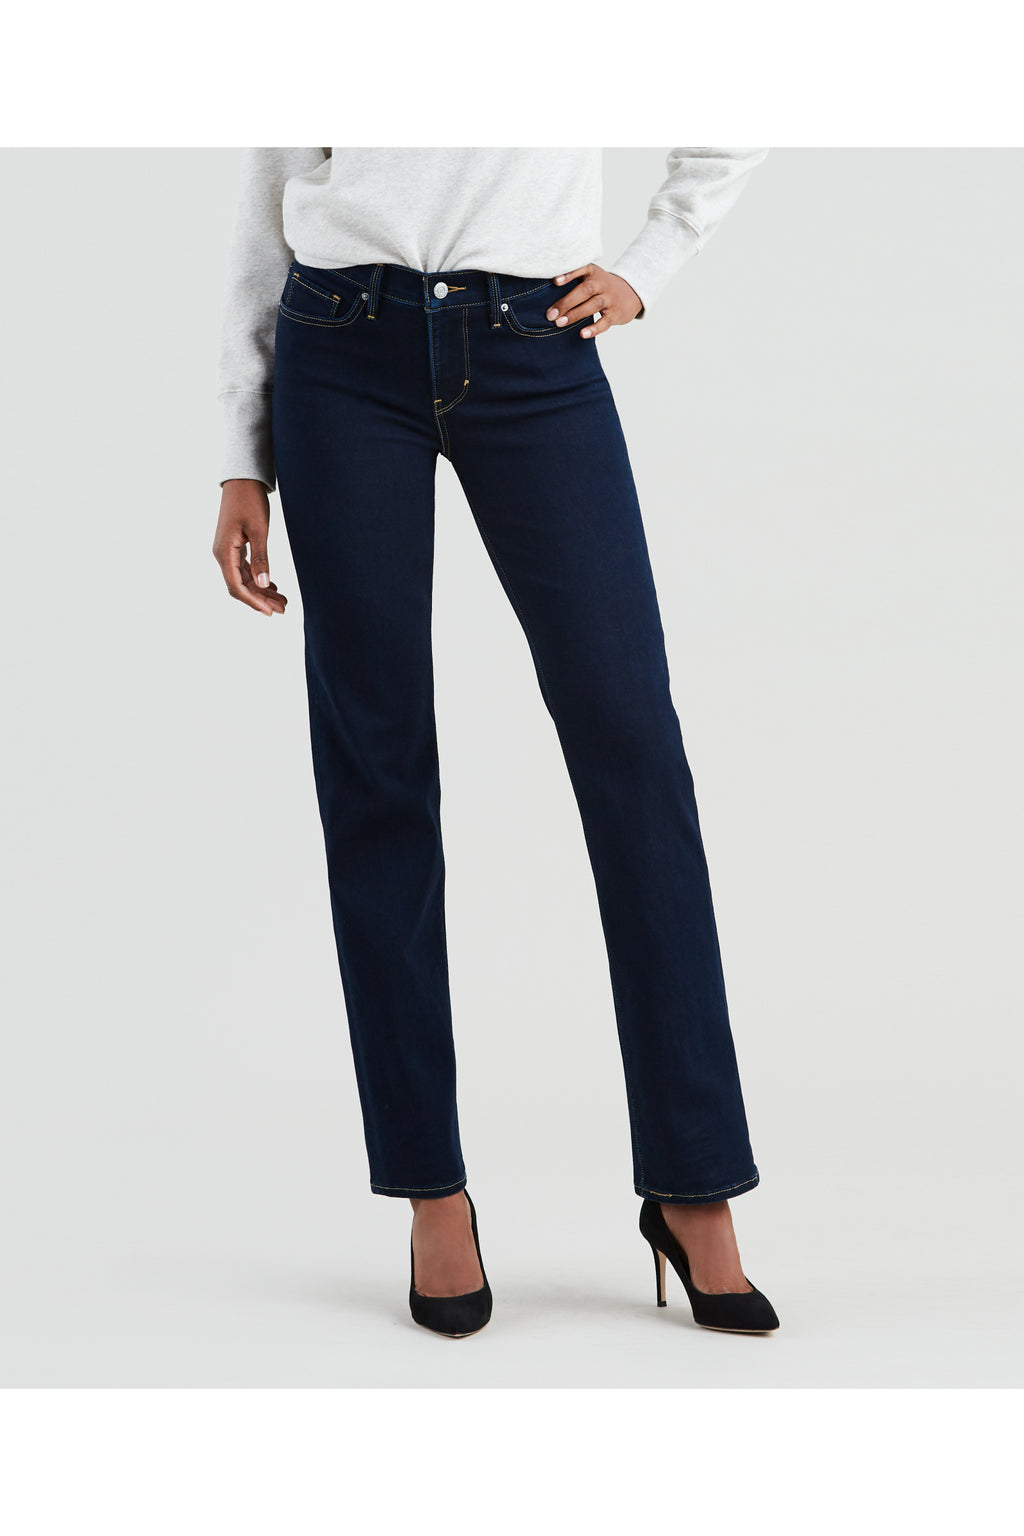 Levi's Womens 314 Shaping Straight Jeans - Open Ocean